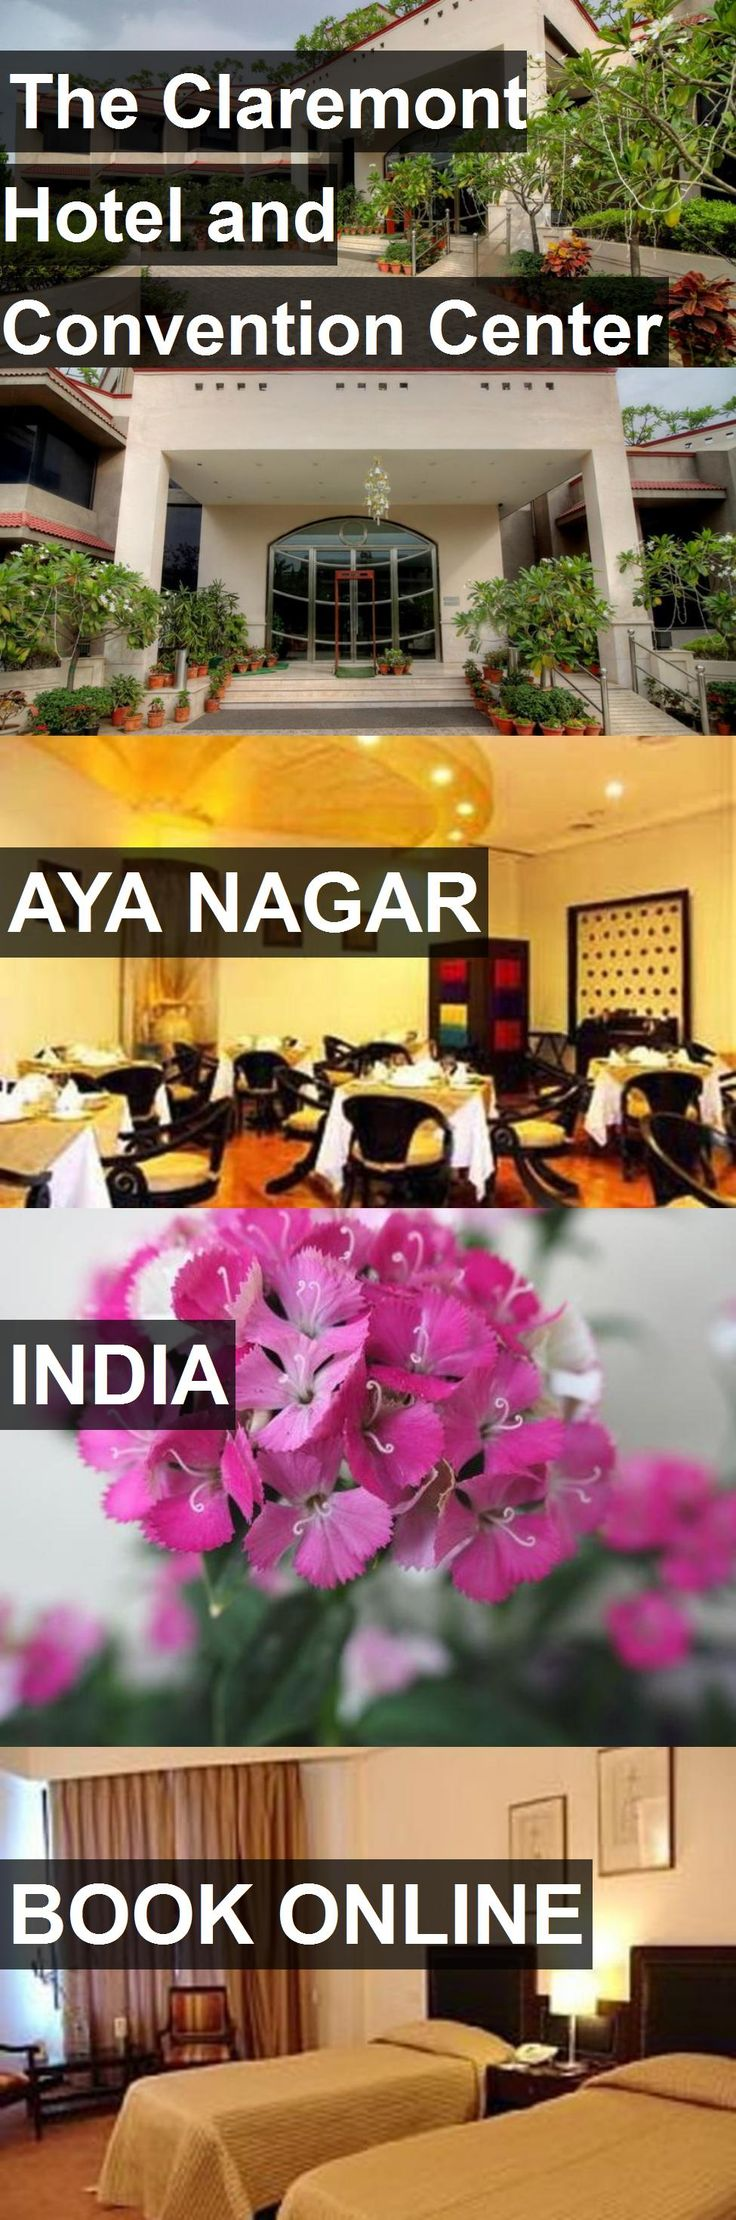 The Claremont Hotel and Convention Center in Aya Nagar, India. For more information, photos, reviews and best prices please follow the link. #India #AyaNagar #travel #vacation #hotel